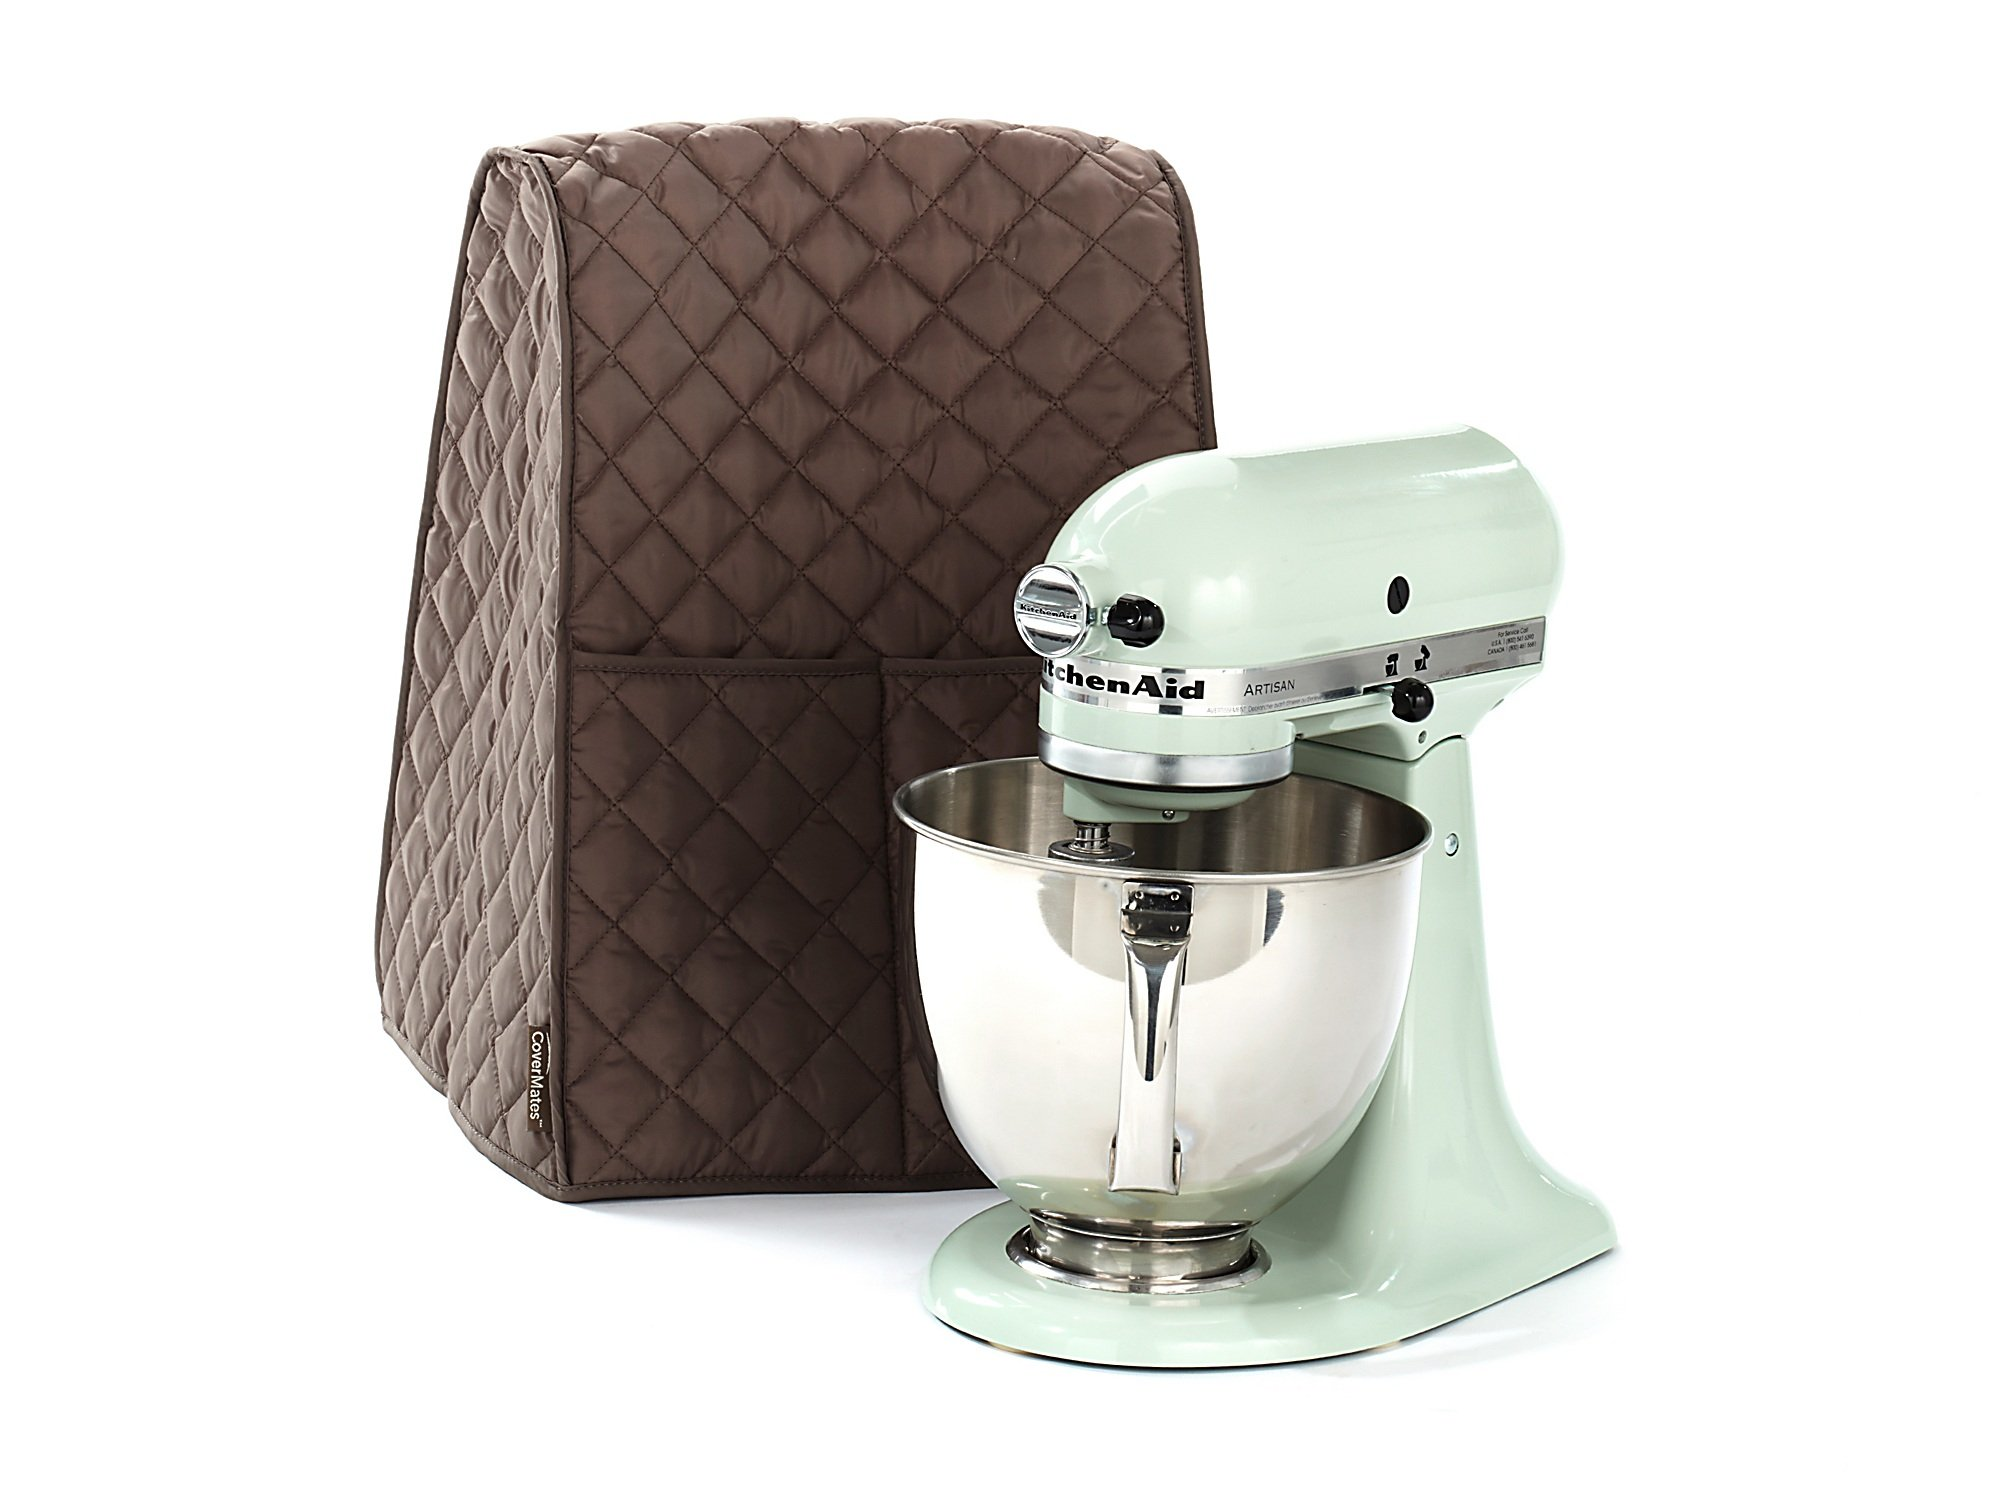 CoverMates – Rounded Mixer Cover – 12W x 12D x 17H – Diamond Collection – 2 YR Warranty – Year Around Protection - Bronze